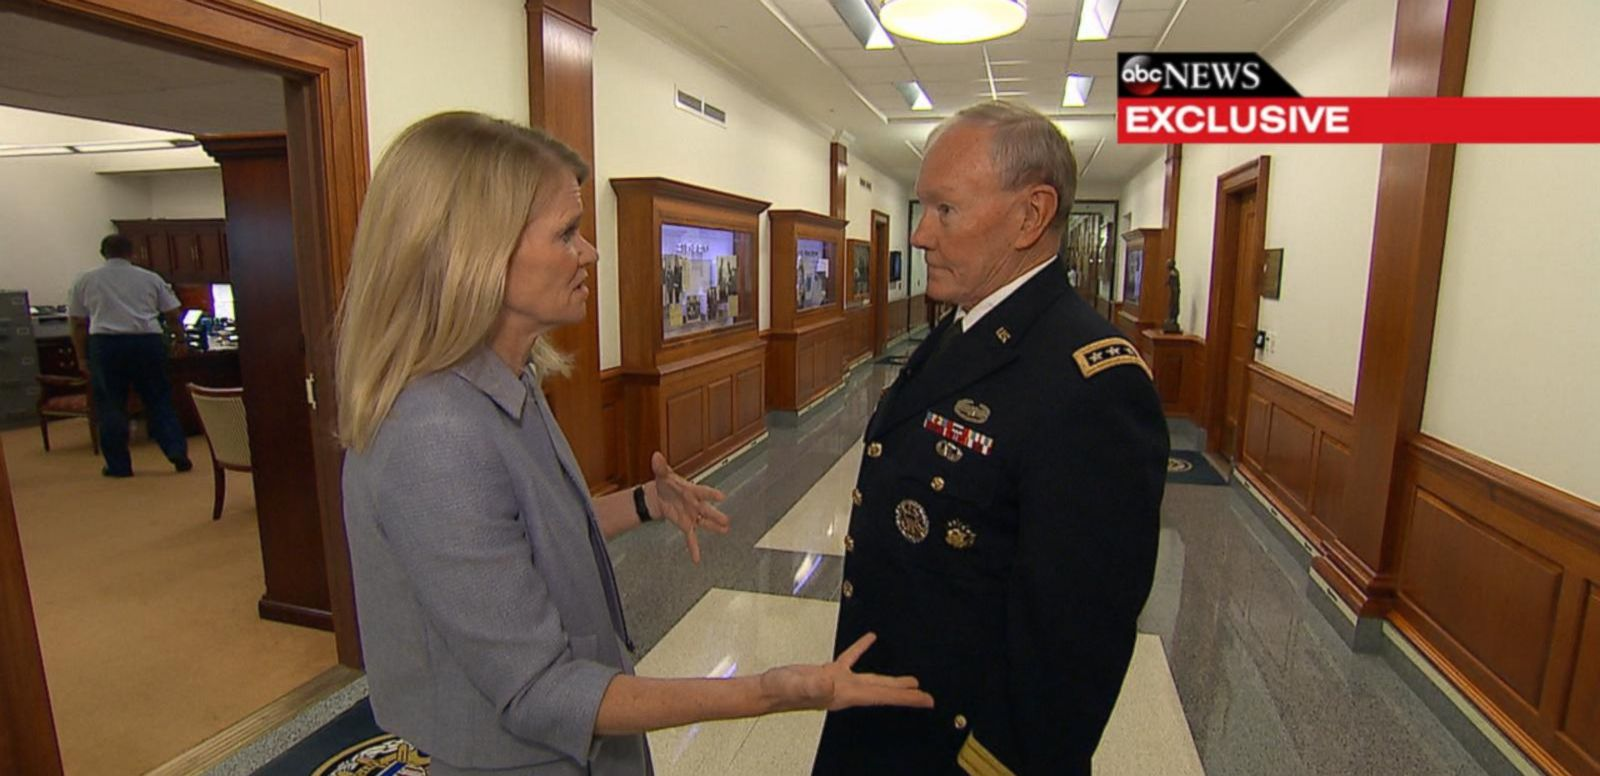 VIDEO: Joint Chiefs Chairman: Russian Involvement in ISIS Fight 'Could Complicate Things'